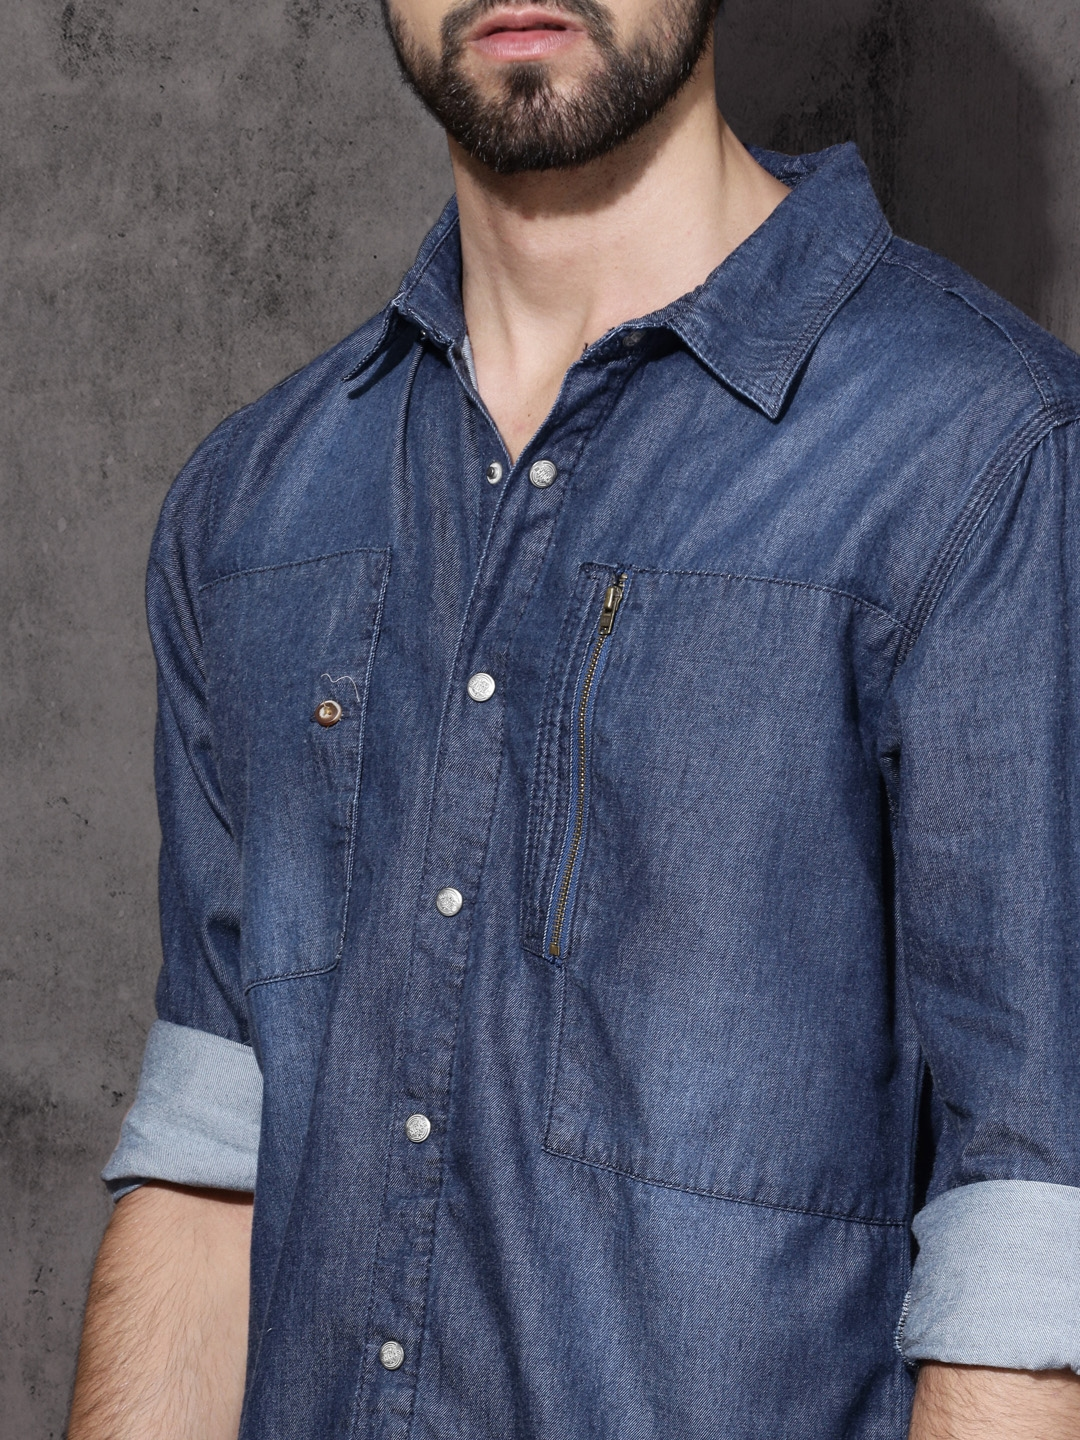 9ad9c8c197 Buy Roadster Men Blue Regular Fit Chambray Utility Casual Shirt ...